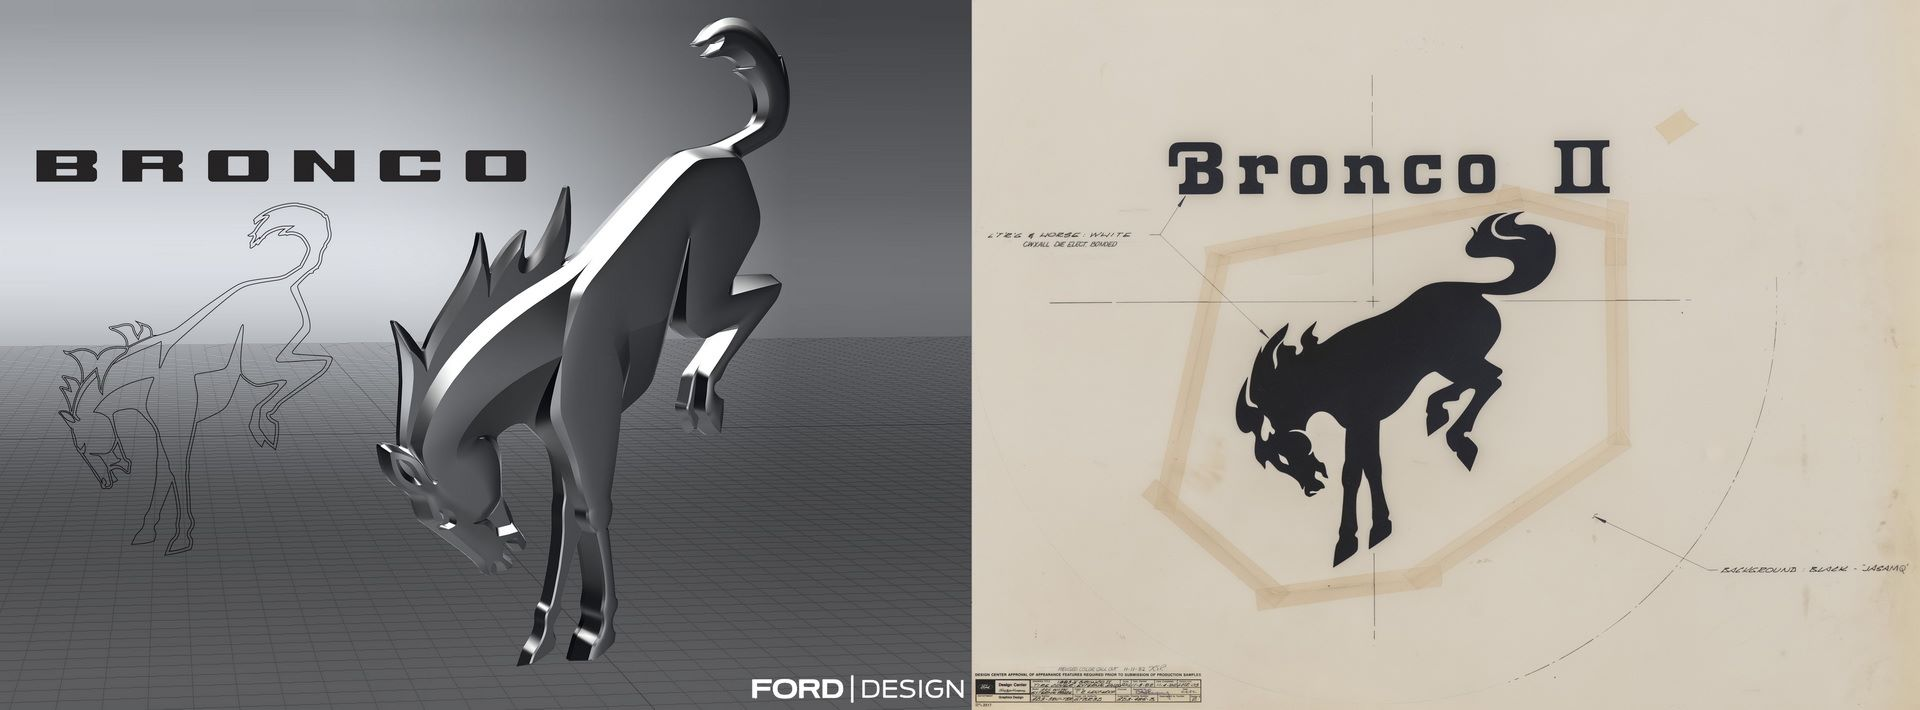 Ford-Bronco-2021-86